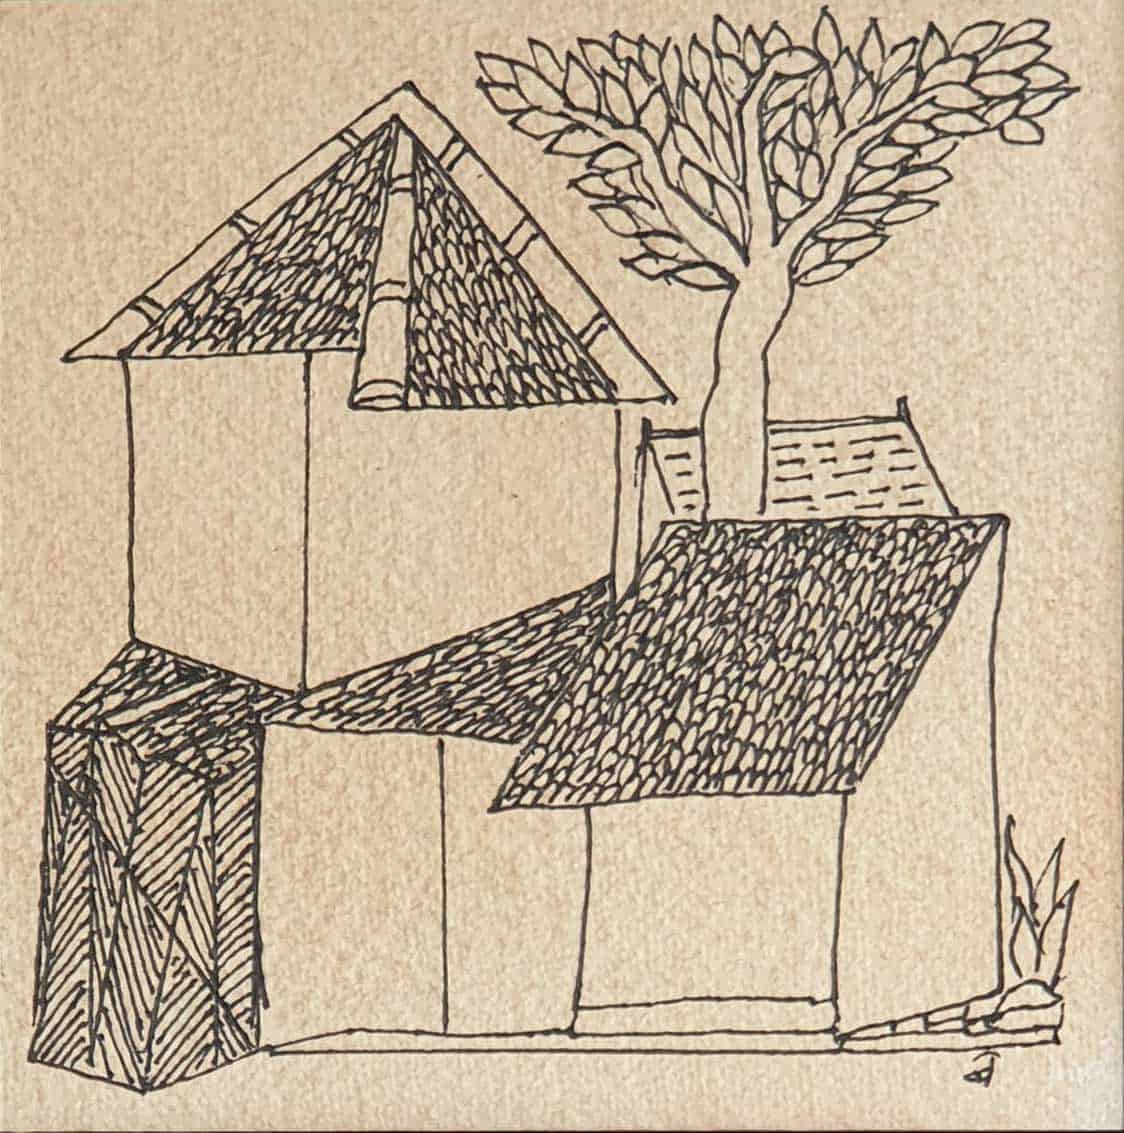 Badri Narayan House Series Ink on Paper 5×5 inches